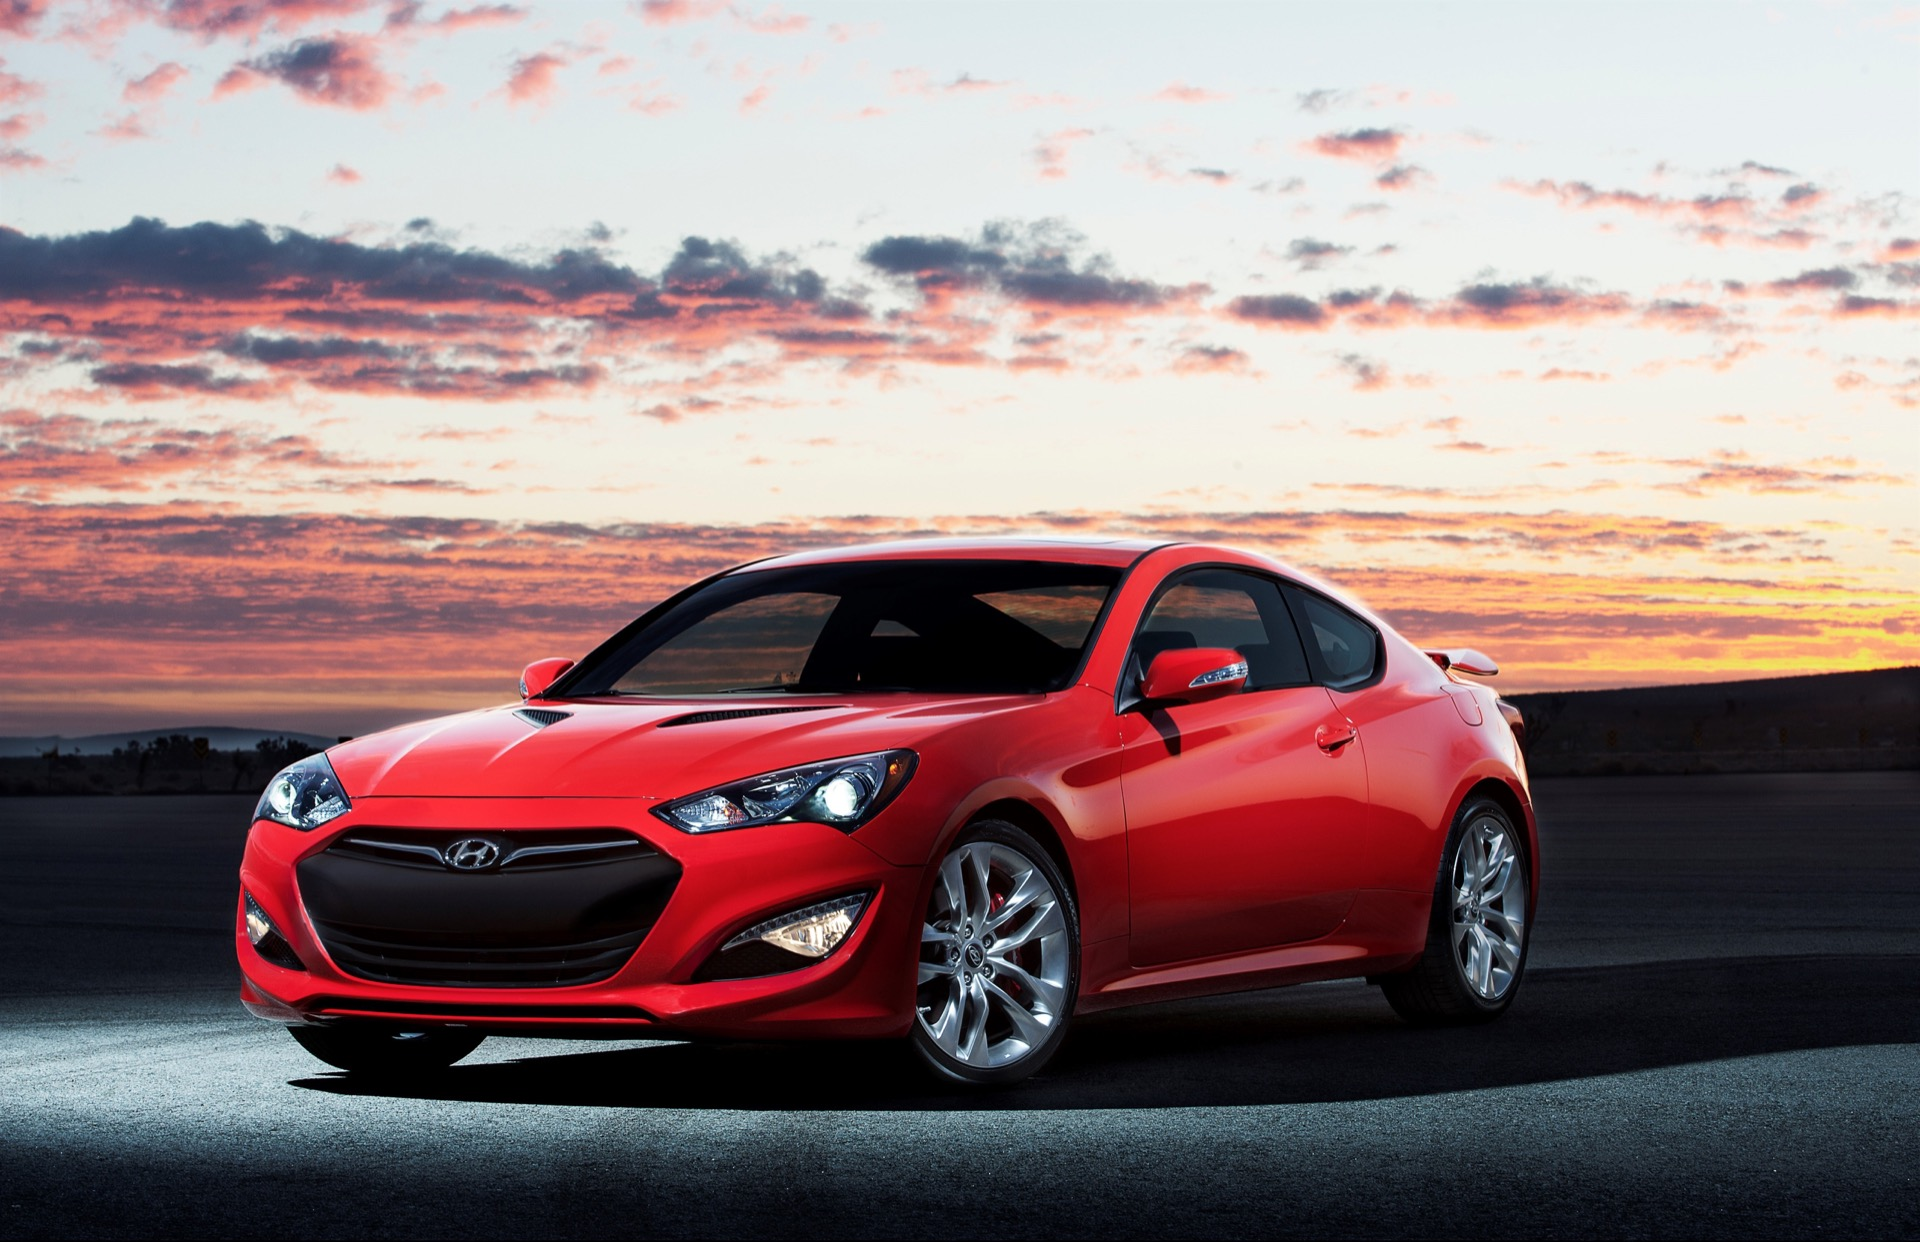 2010 2016 Genesis Coupe Recalled To Fix Airbag Issue 2001 Hyundai Sonata Wiring Harness Srs